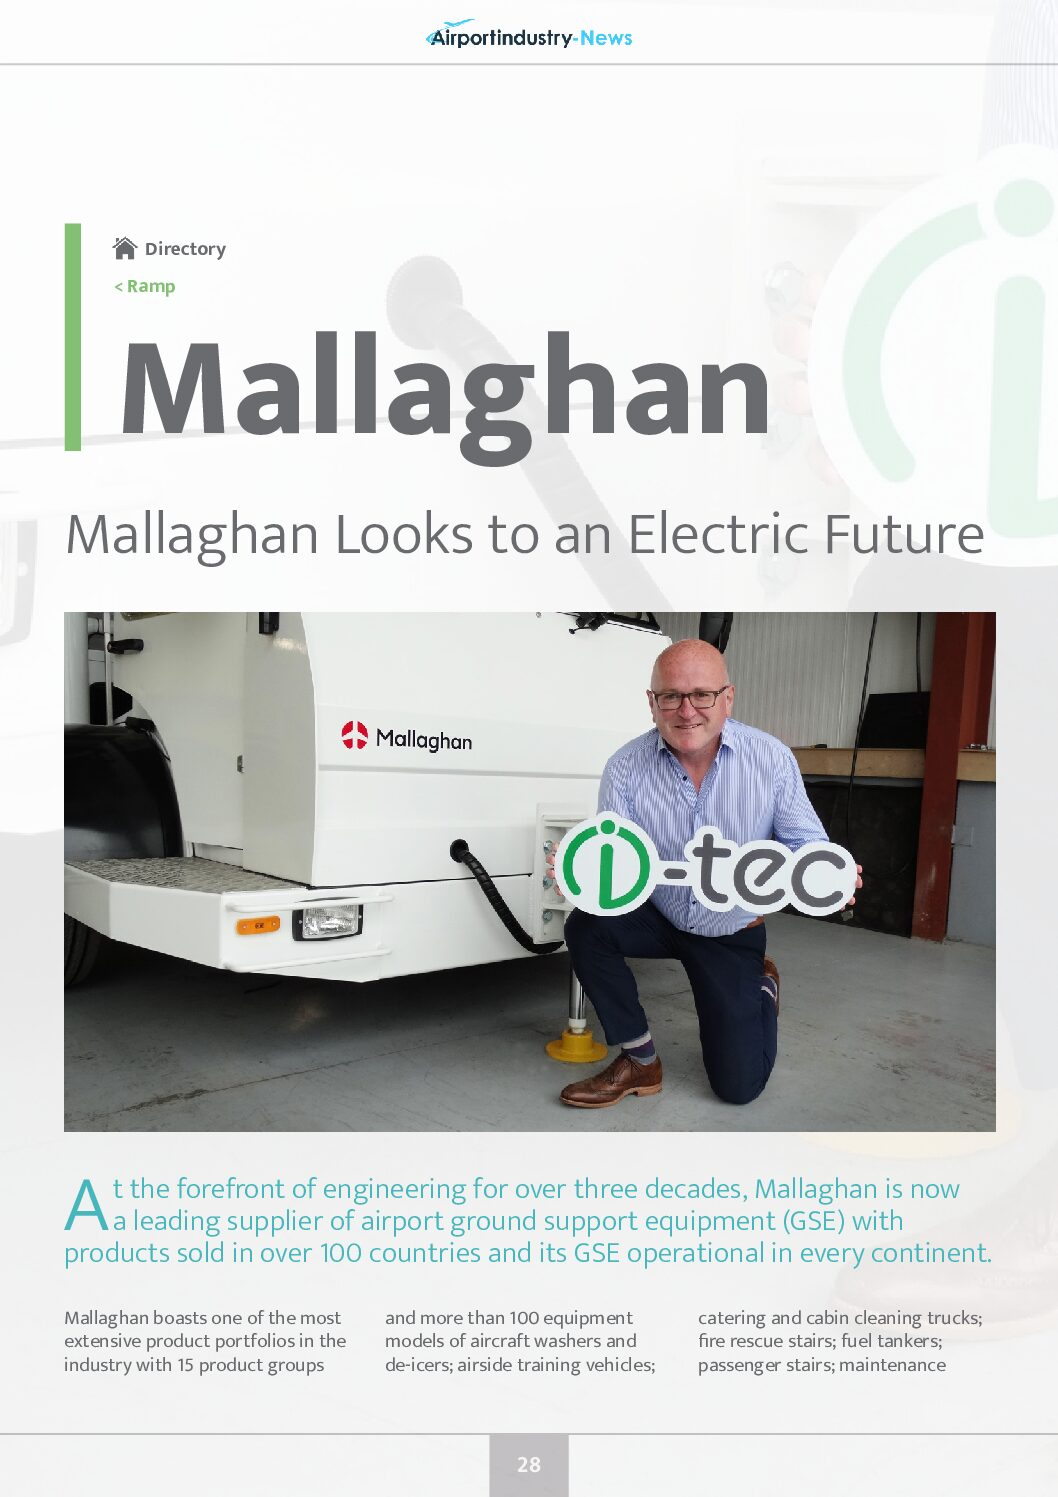 Mallaghan Looks to an Electric Future